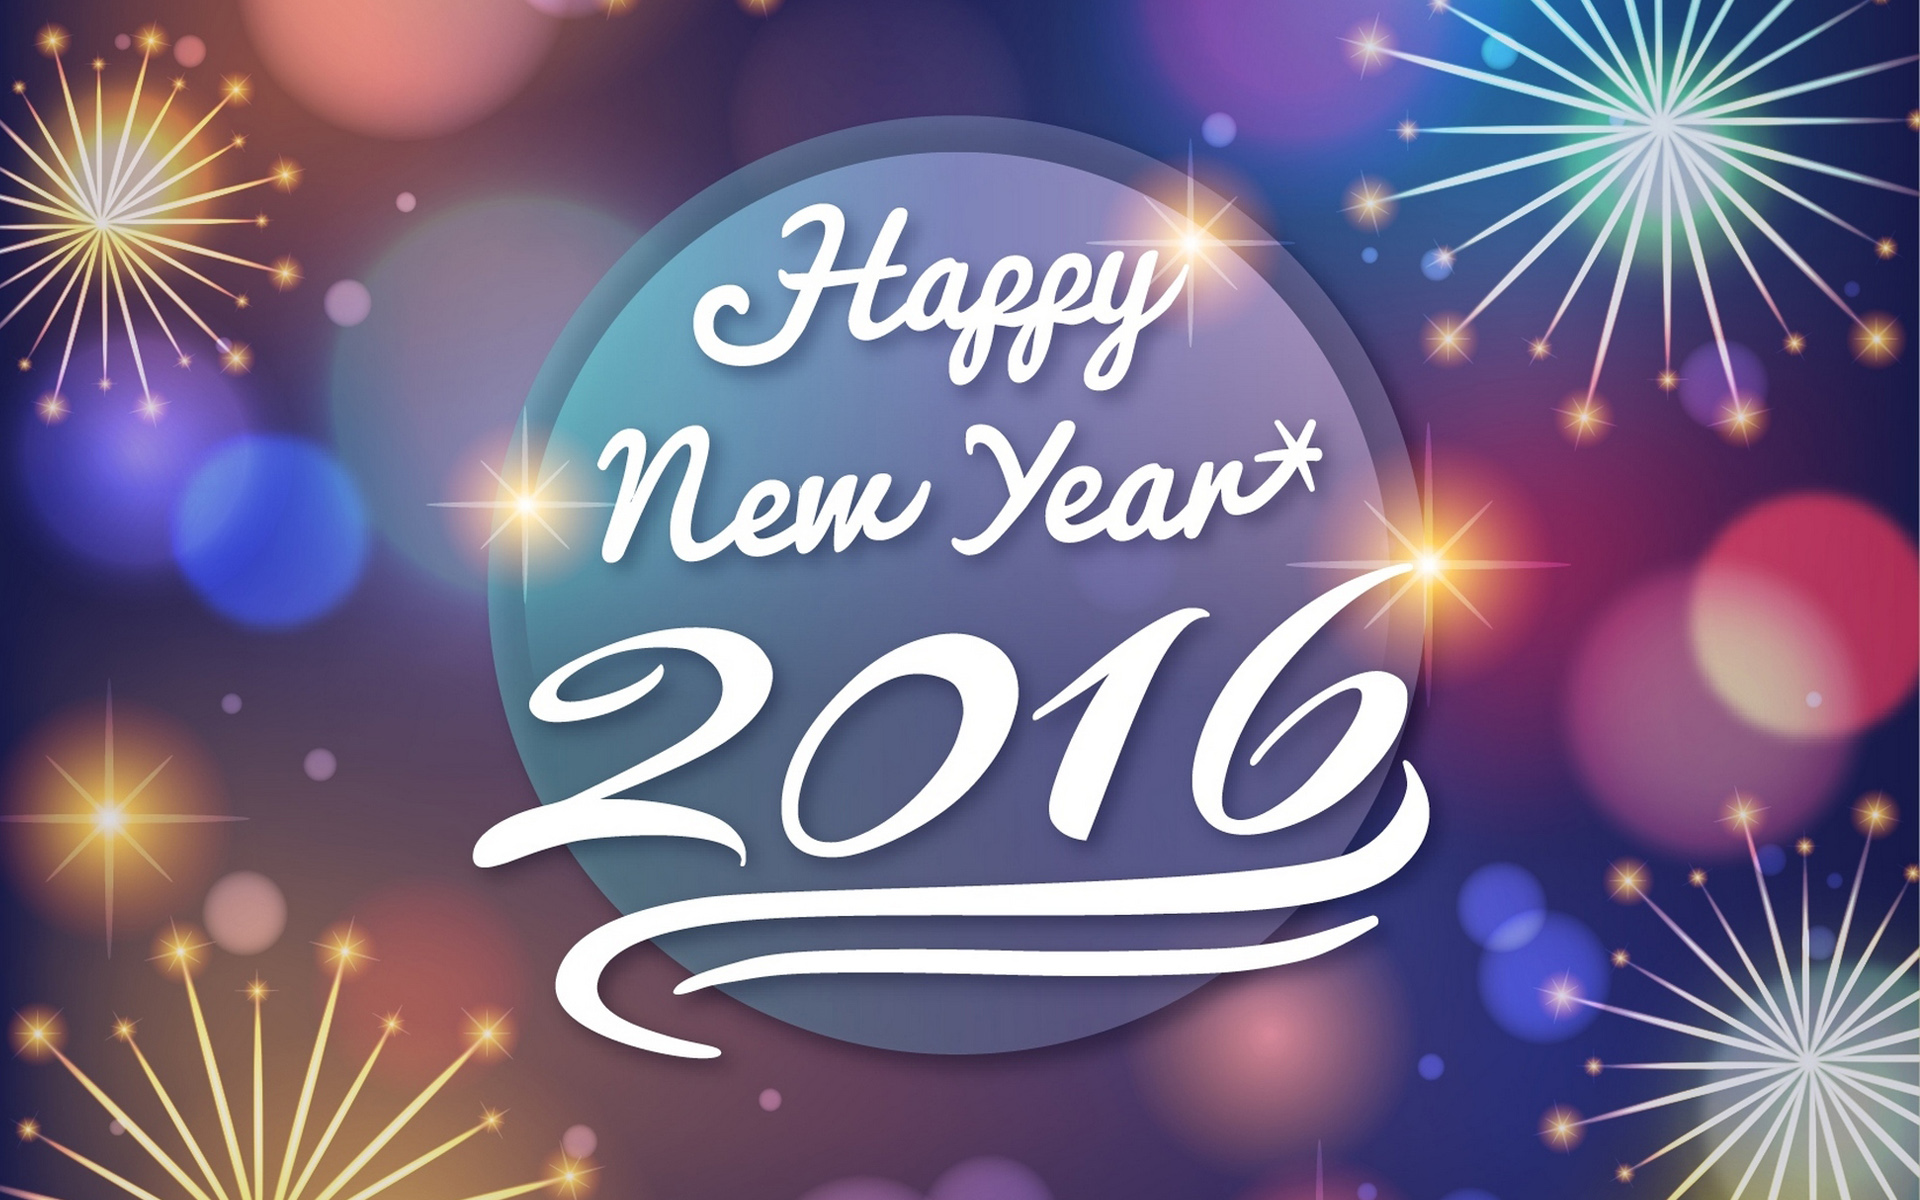 Happy New Year HD Images, Pictures, Pics Free Download